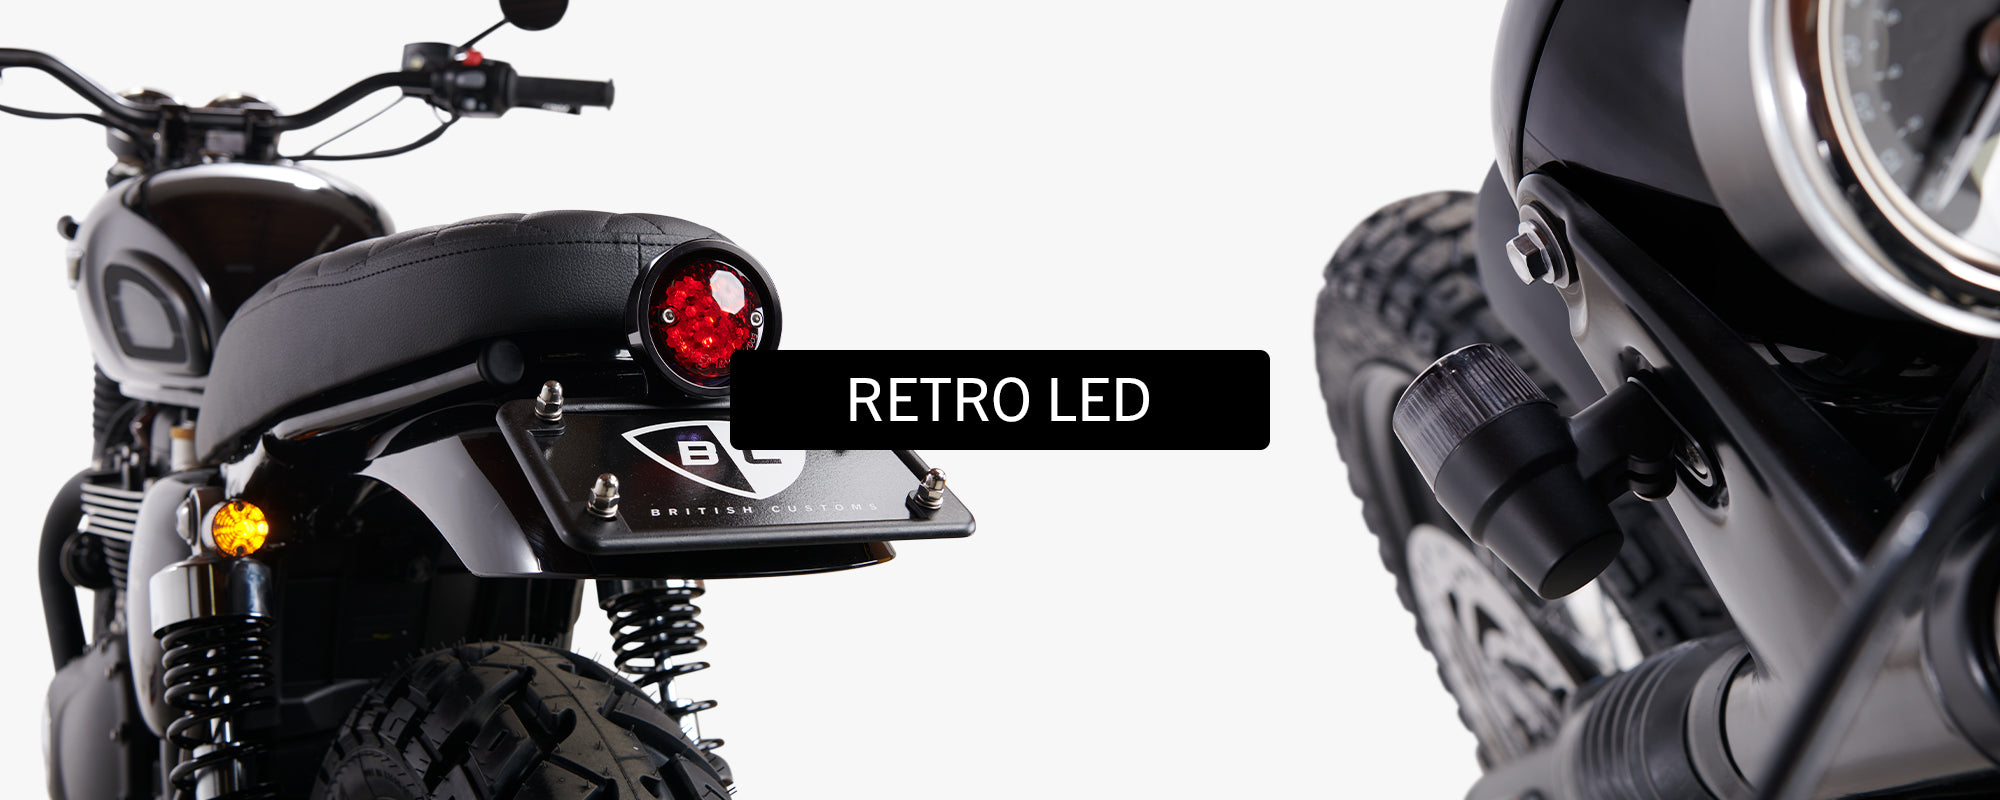 British Customs Retro LED Turn Signals Triumph Motorcycle